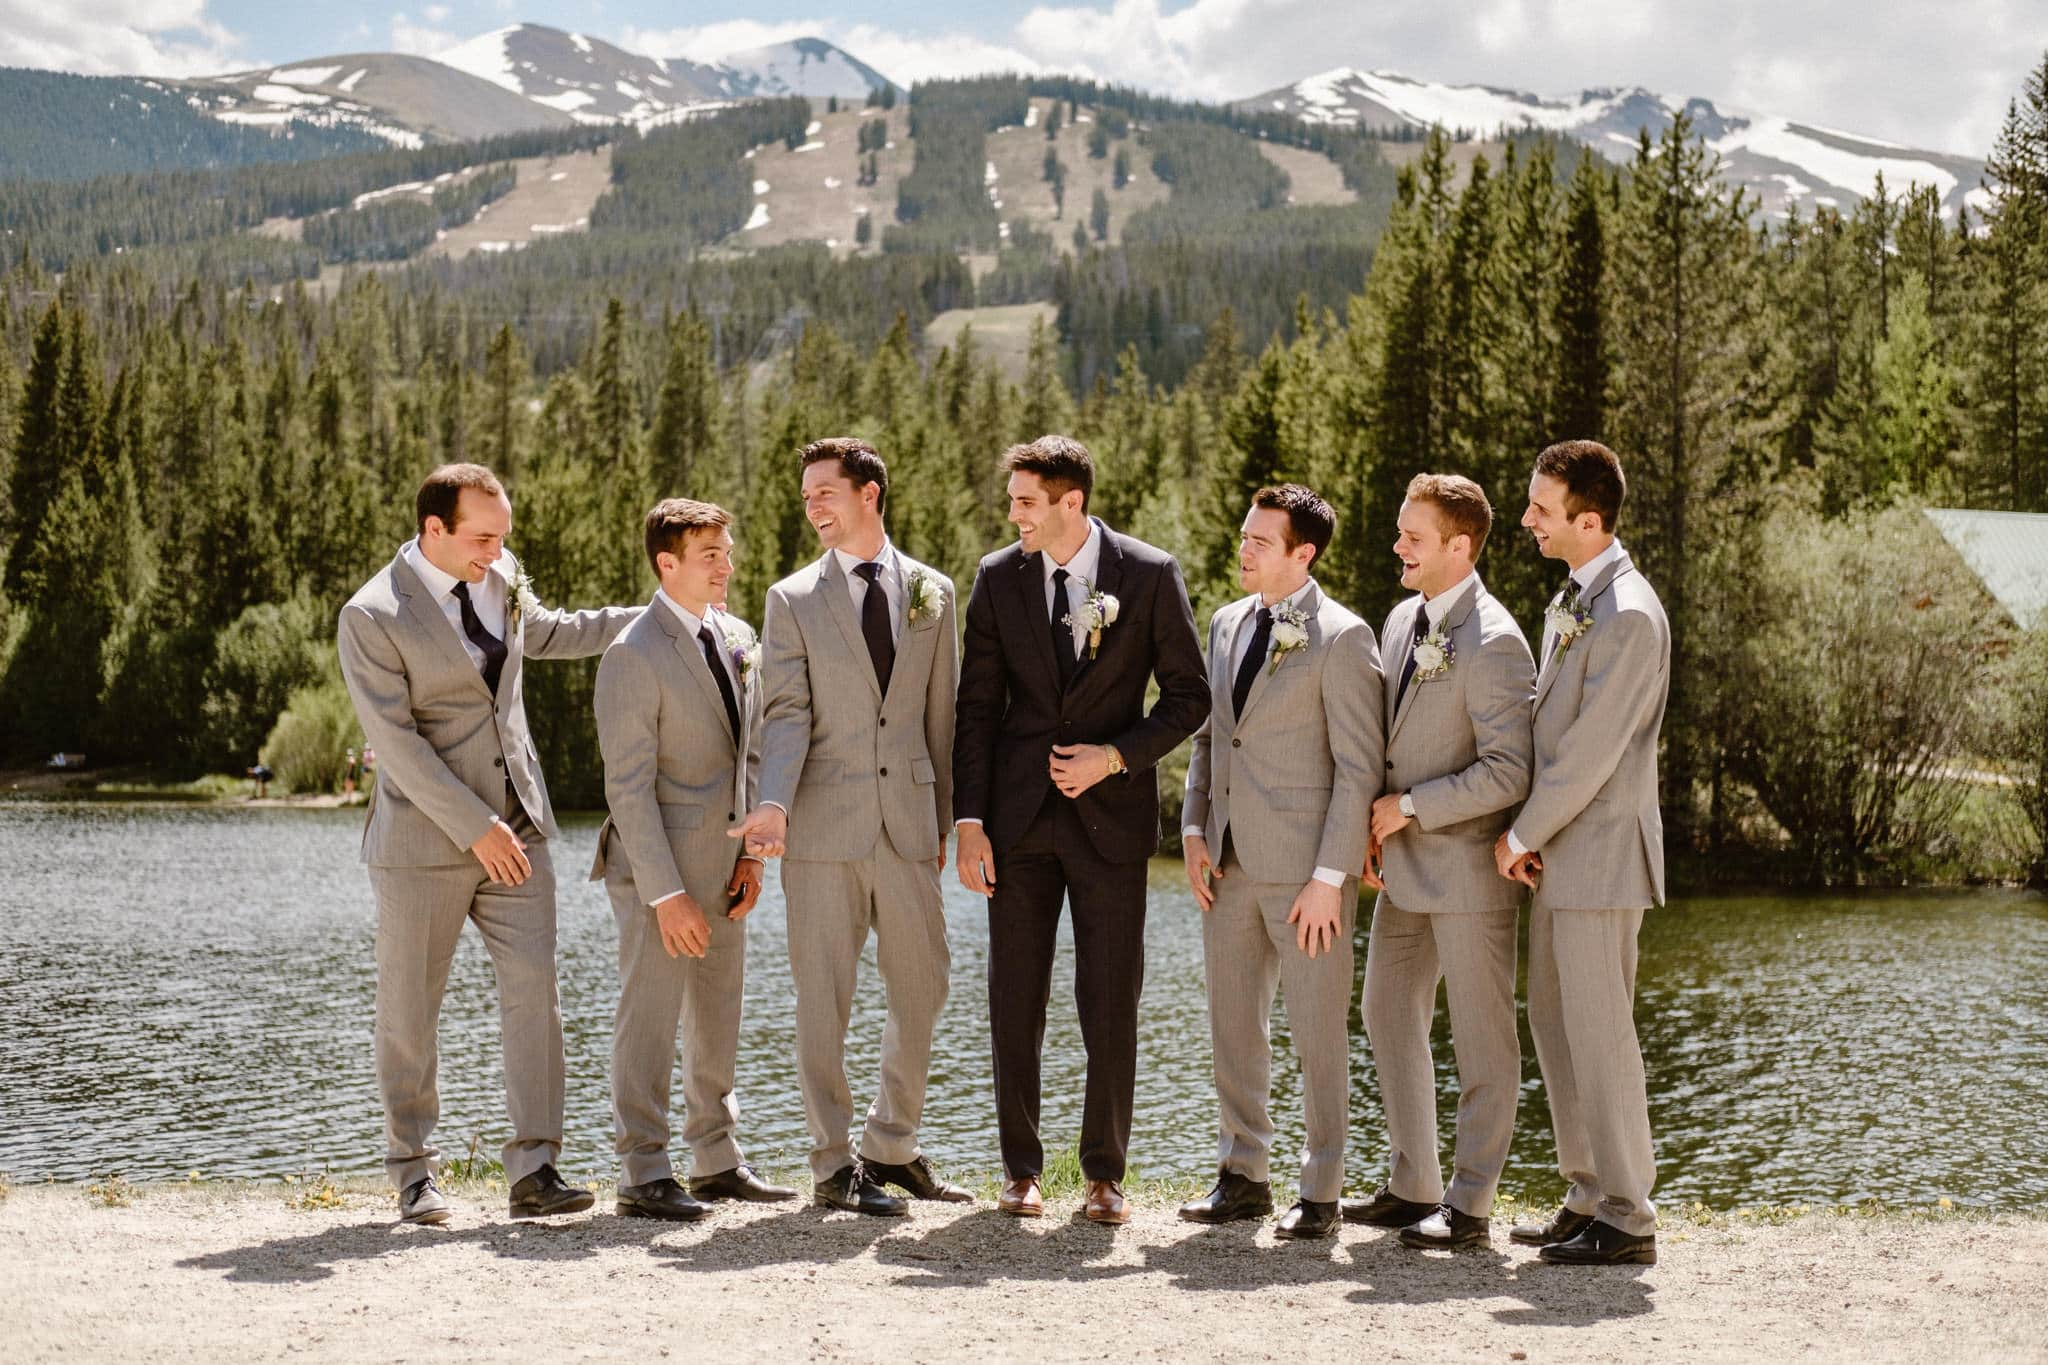 Groom in navy blue suit and groomsmen in light gray suits, wedding party photos, Breckenridge wedding photographer at Sawmill Reservoir